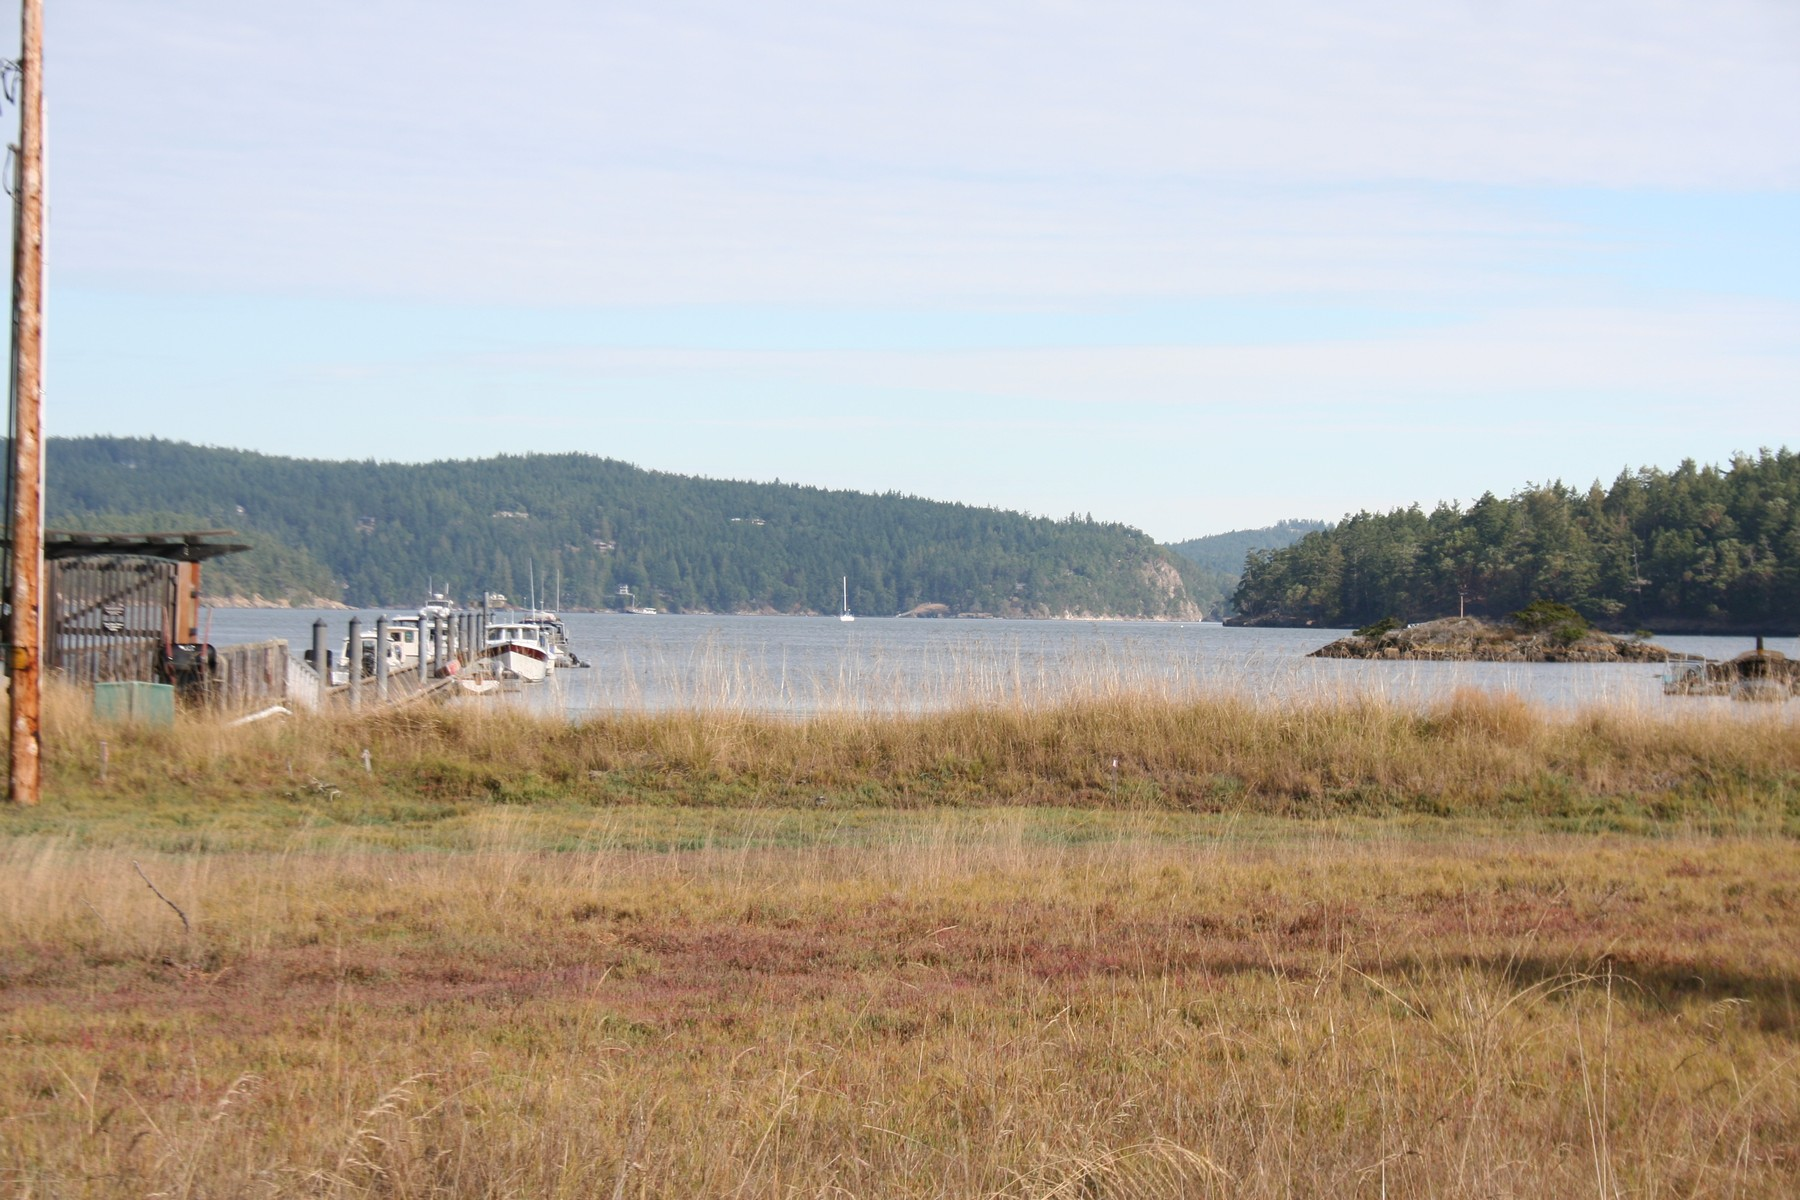 Đất đai vì Bán tại Great lot Overlooking Neck Point Marina Lot 27 Sylvan Circle Shaw Island, Washington, 98286 Hoa Kỳ